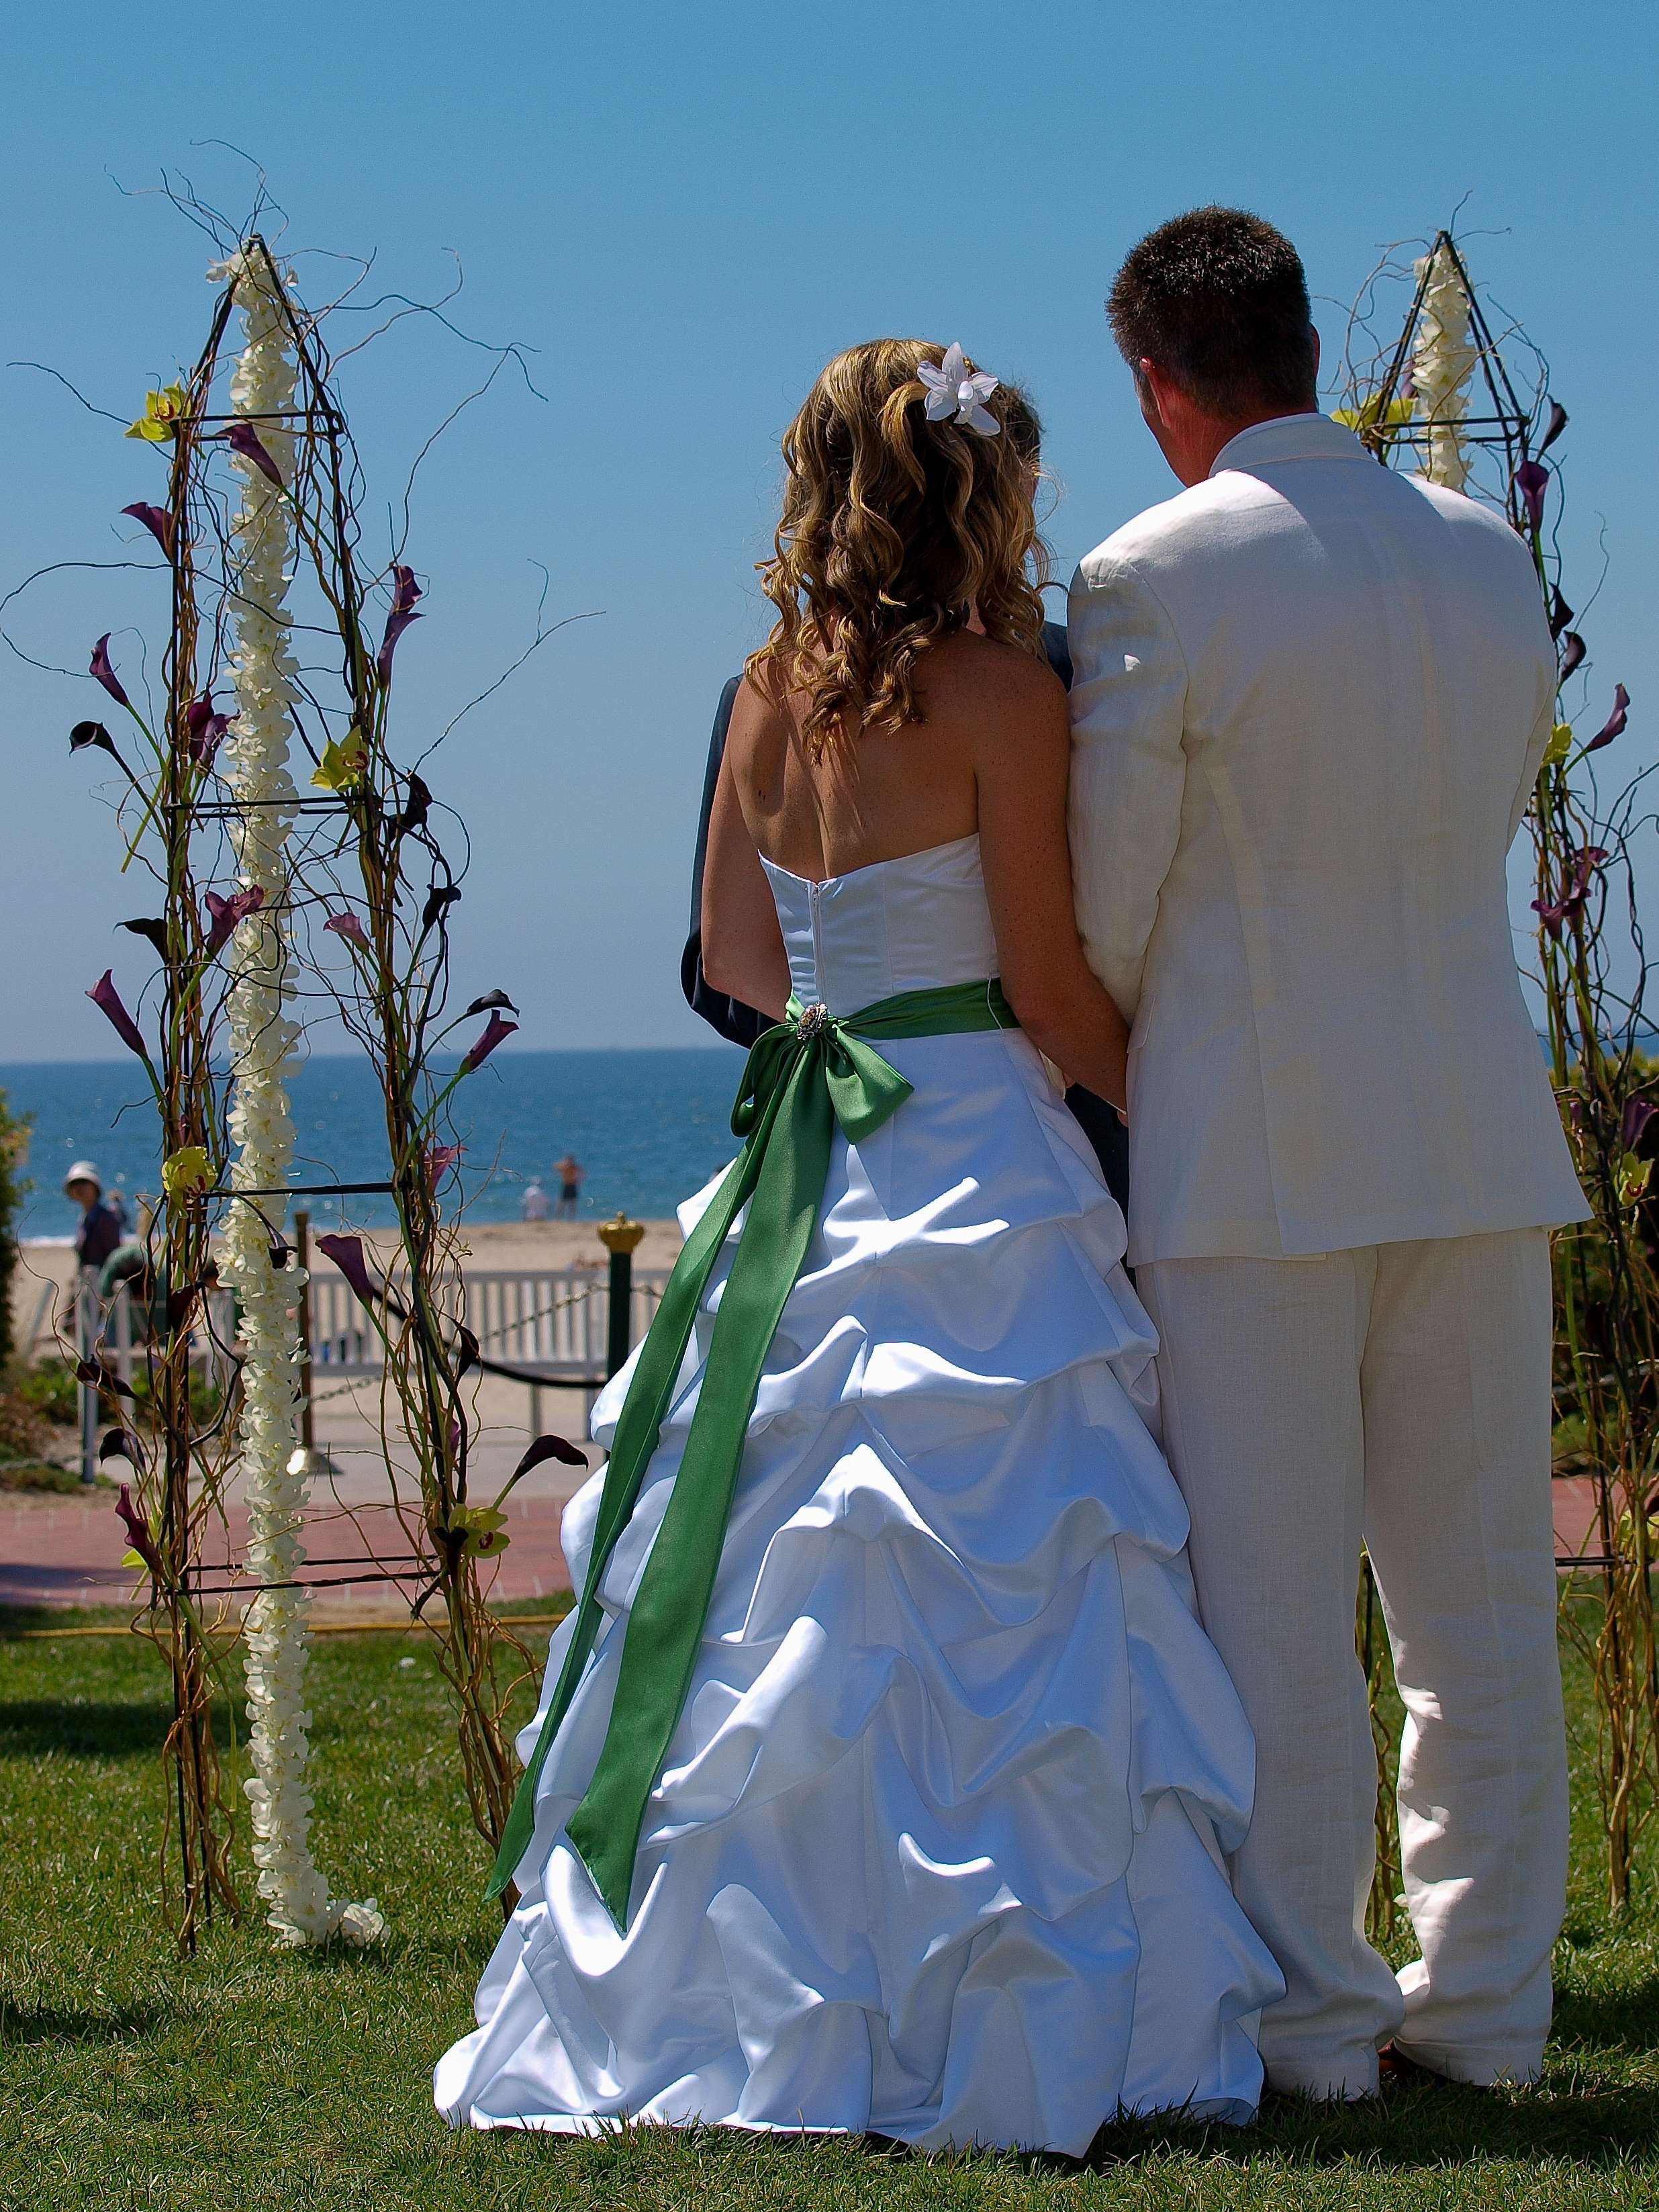 Ceremony, Flowers & Decor, Wedding Dresses, Beach Wedding Dresses, Fashion, green, dress, Beach, Ceremony Flowers, Flowers, Beach Wedding Flowers & Decor, An impressive event, Flower Wedding Dresses